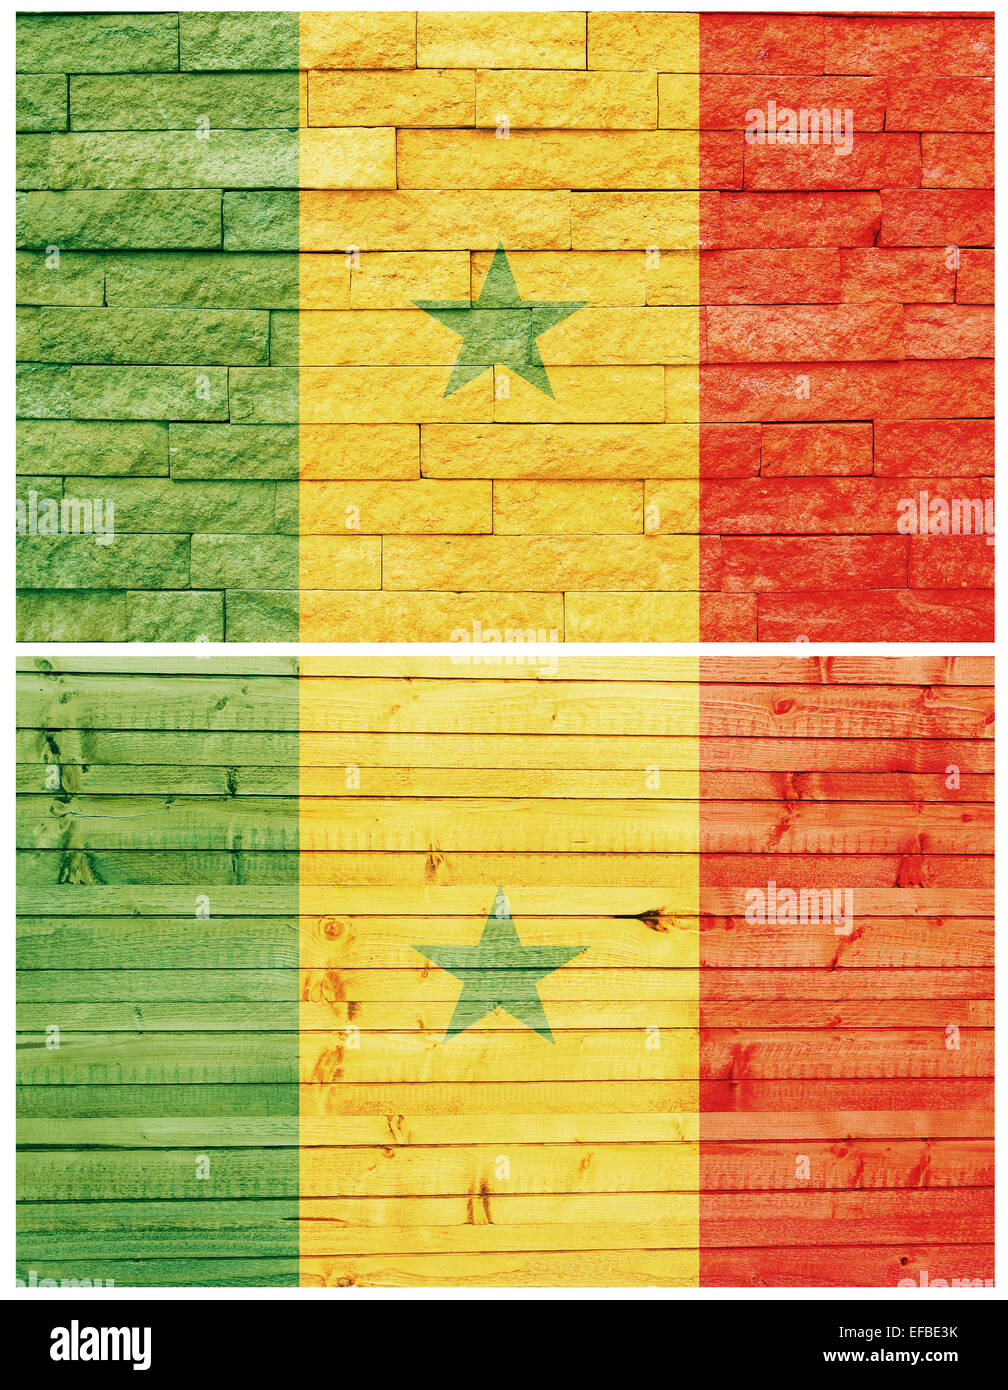 Bandera de Senegal de pared vintage collage Imagen De Stock